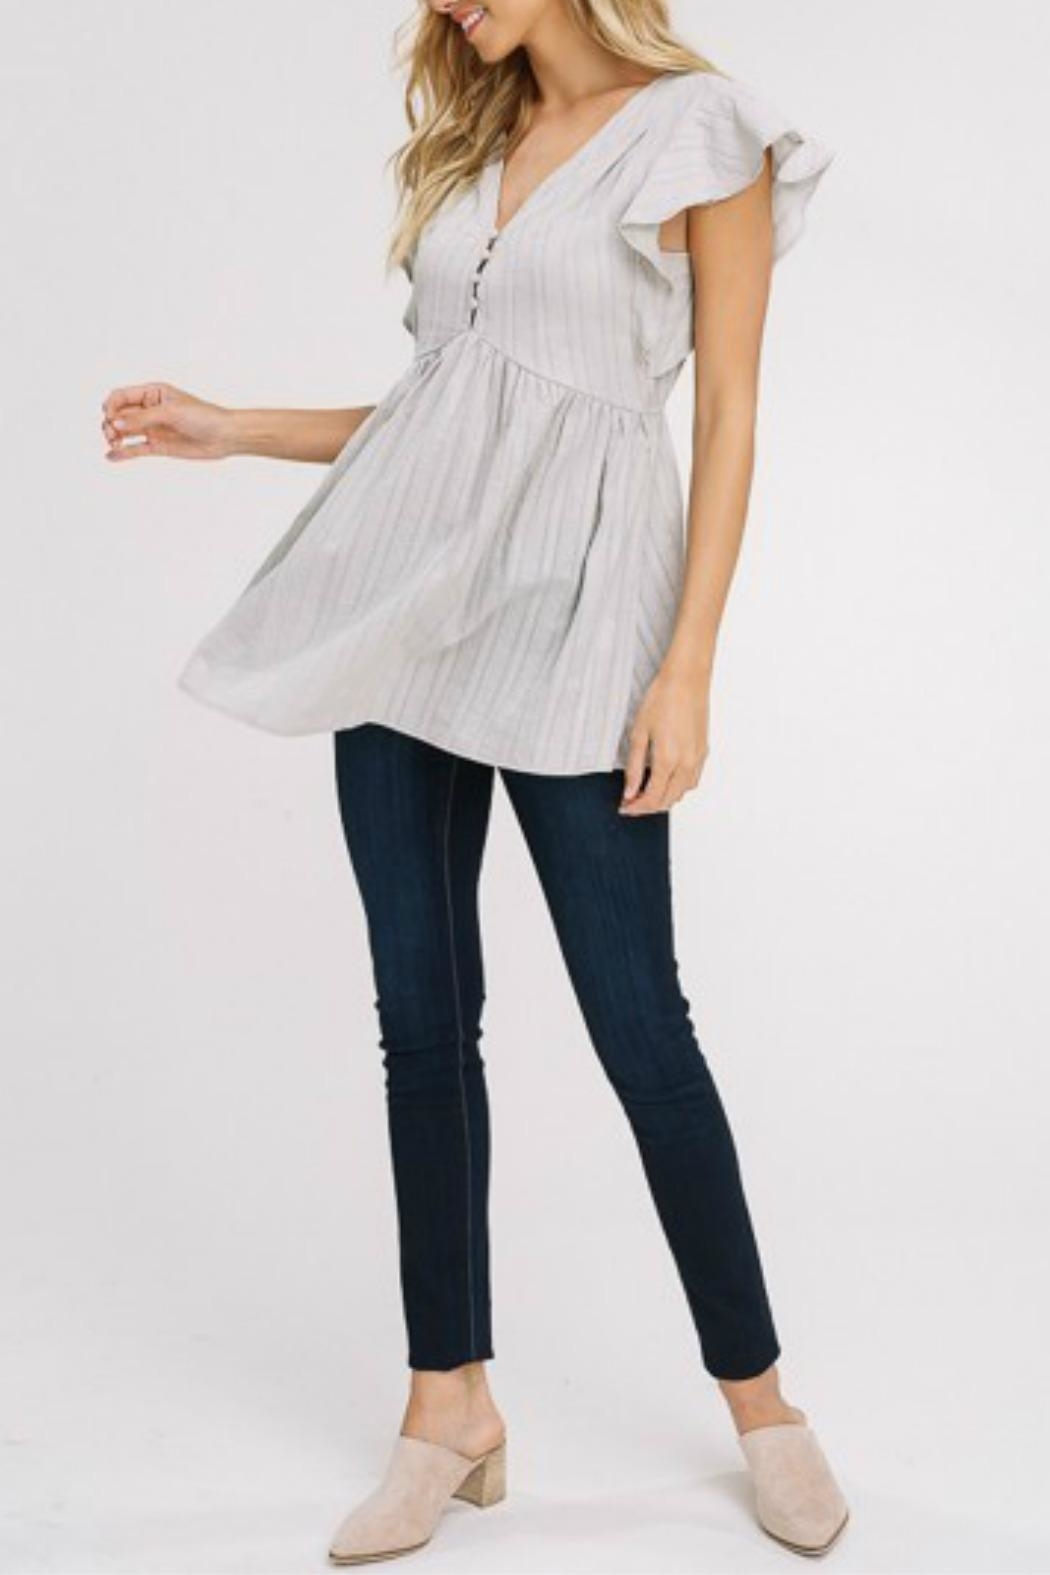 Izzie's Boutique Emily Sage Tunic - Side Cropped Image